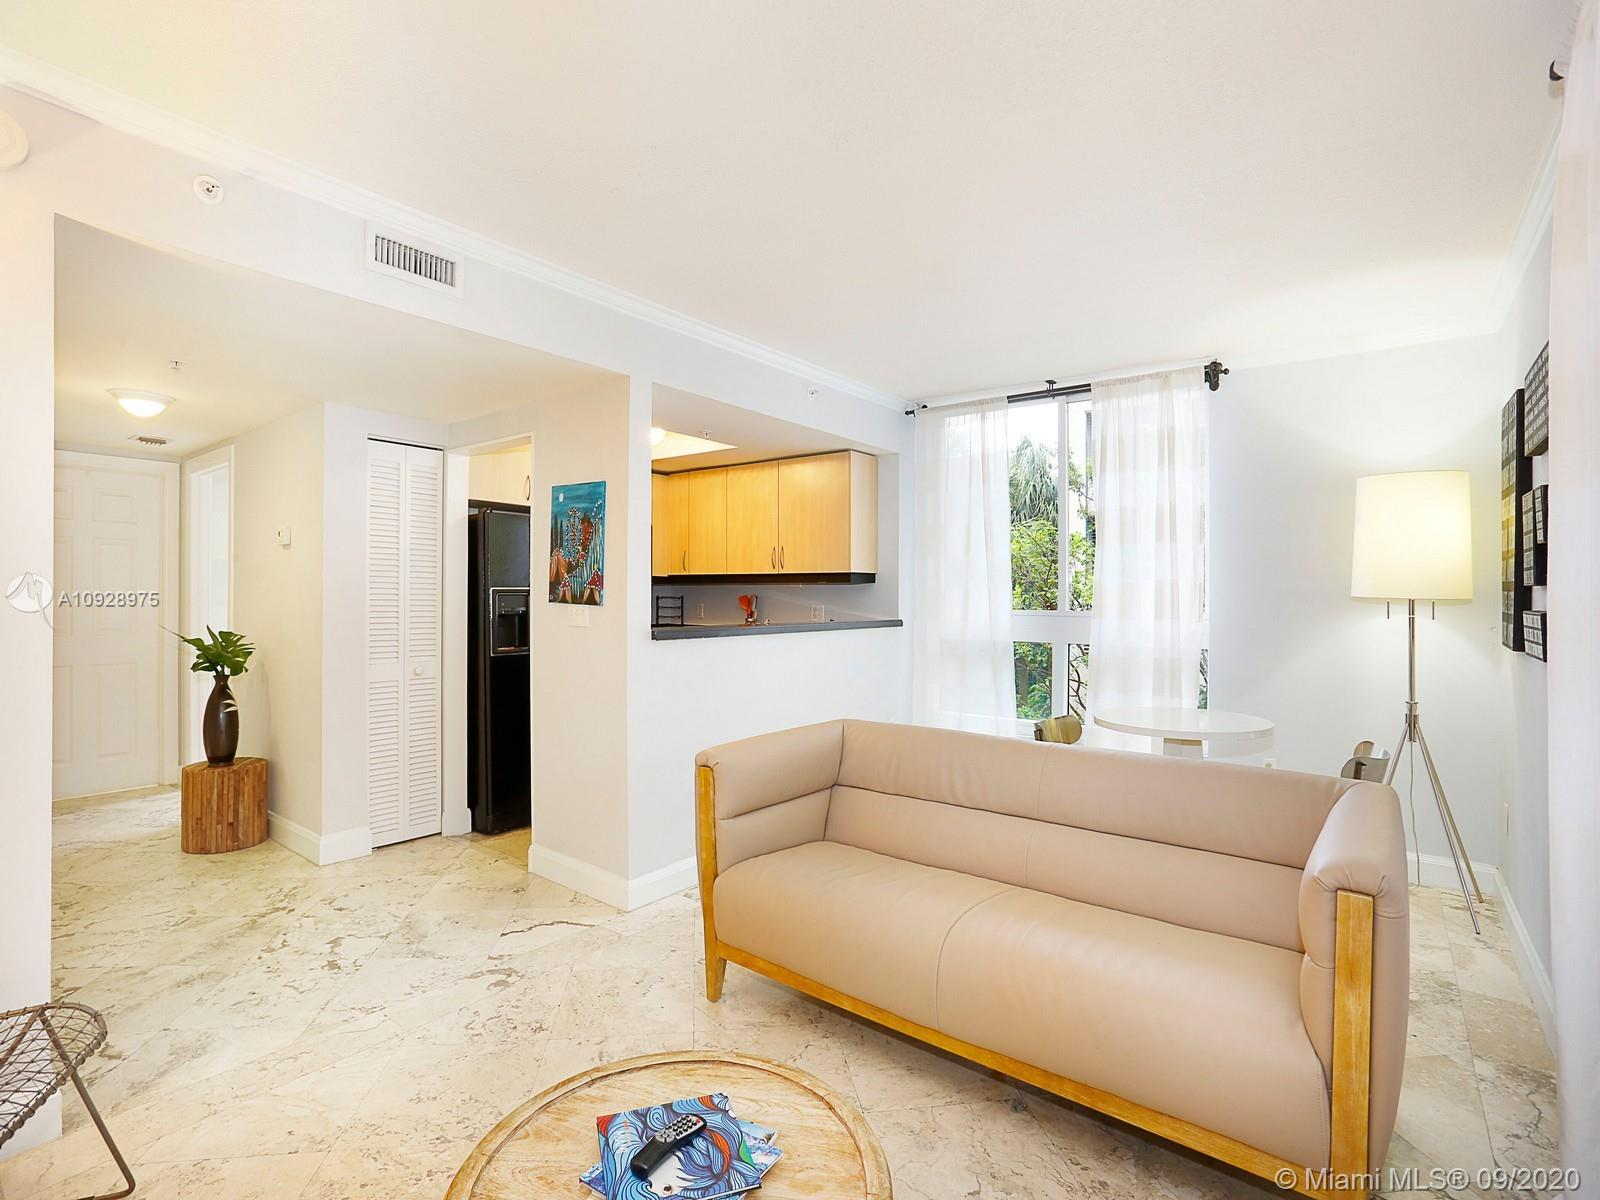 Live in the heart of Coconut Grove in this updated 1/1 unit in the famed Mutiny Condo Hotel. The unit features marble flooring through-out, large tub and shower, dual closets, washer/dryer and full appliance package kitchen with granite counters. Enjoy the amenities of covered garage parking, valet service, restaurant with in-room delivery, pool, jacuzzi, gym, sauna, steam room and 24 hour security.